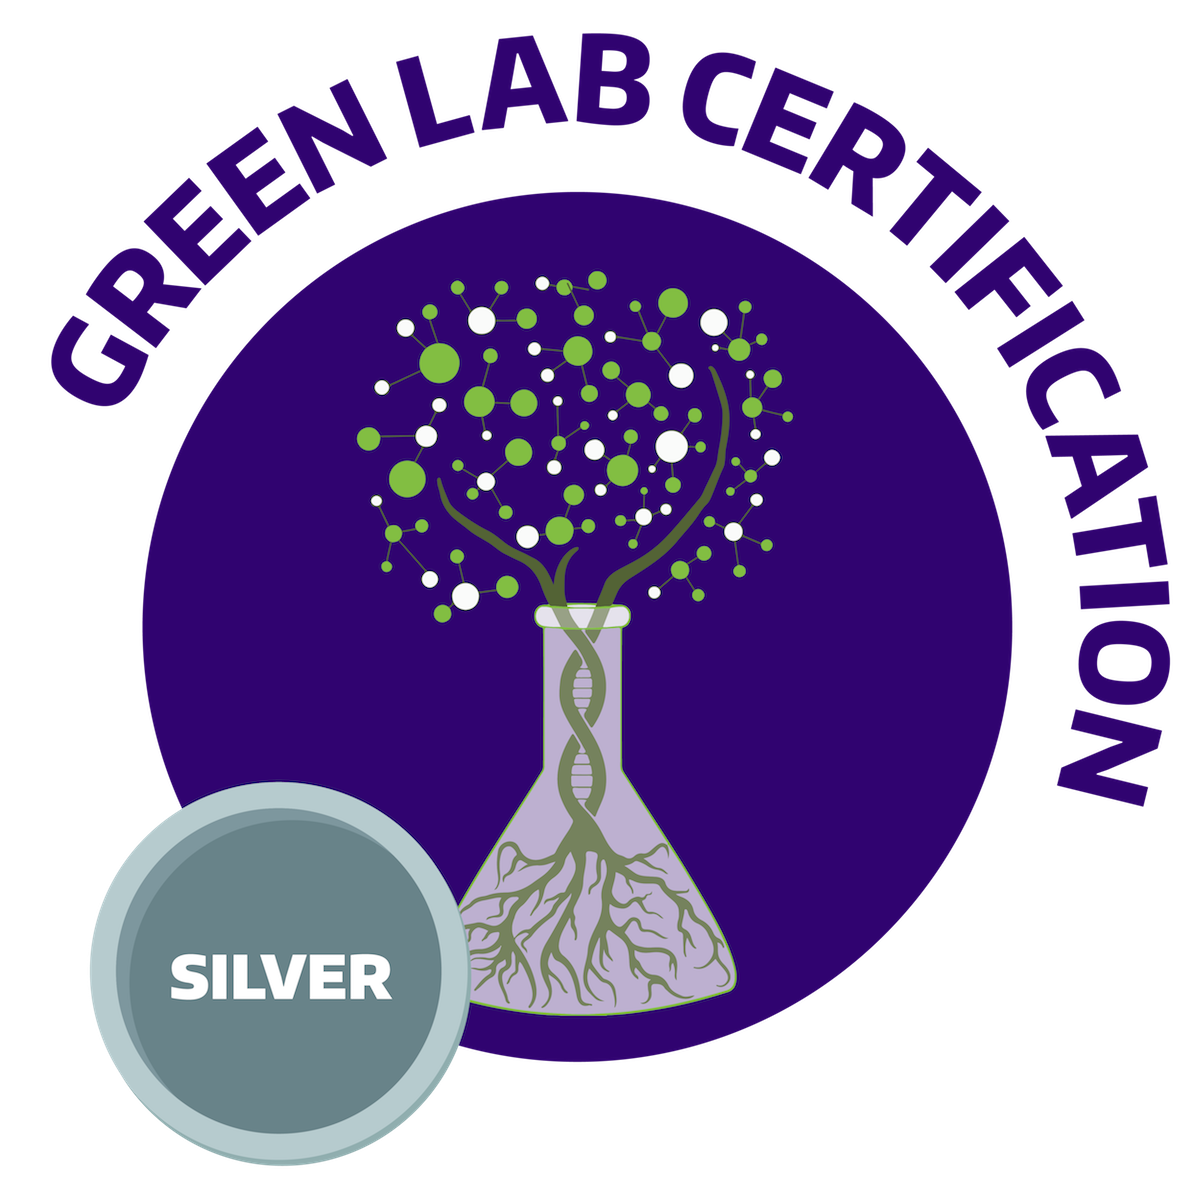 Green Laboratory Program Uw Sustainability